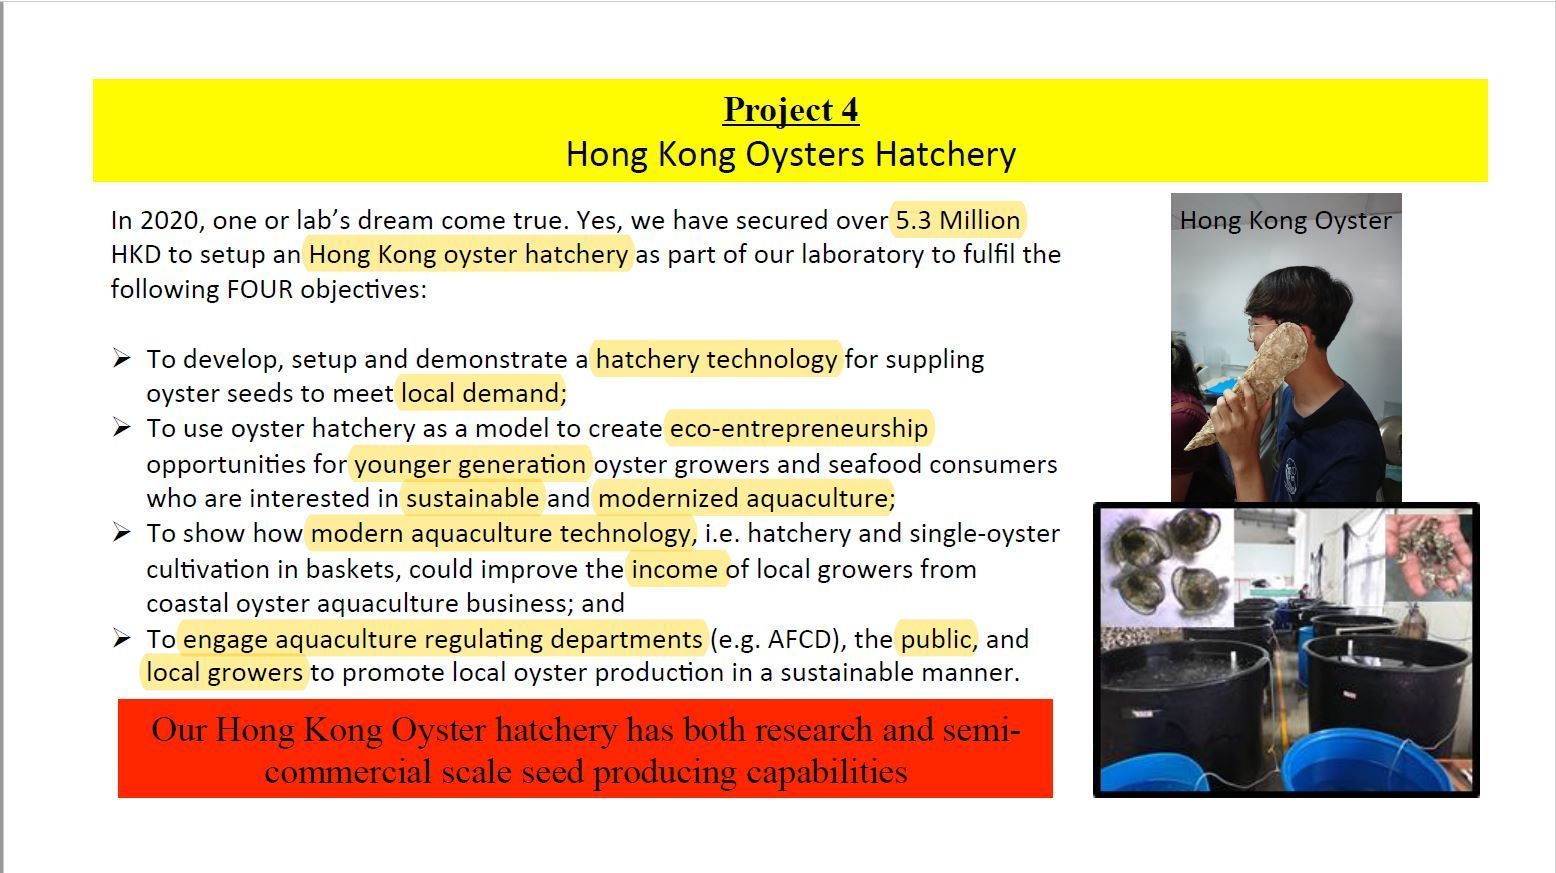 What is the current state and goal for the oyster hatchery?